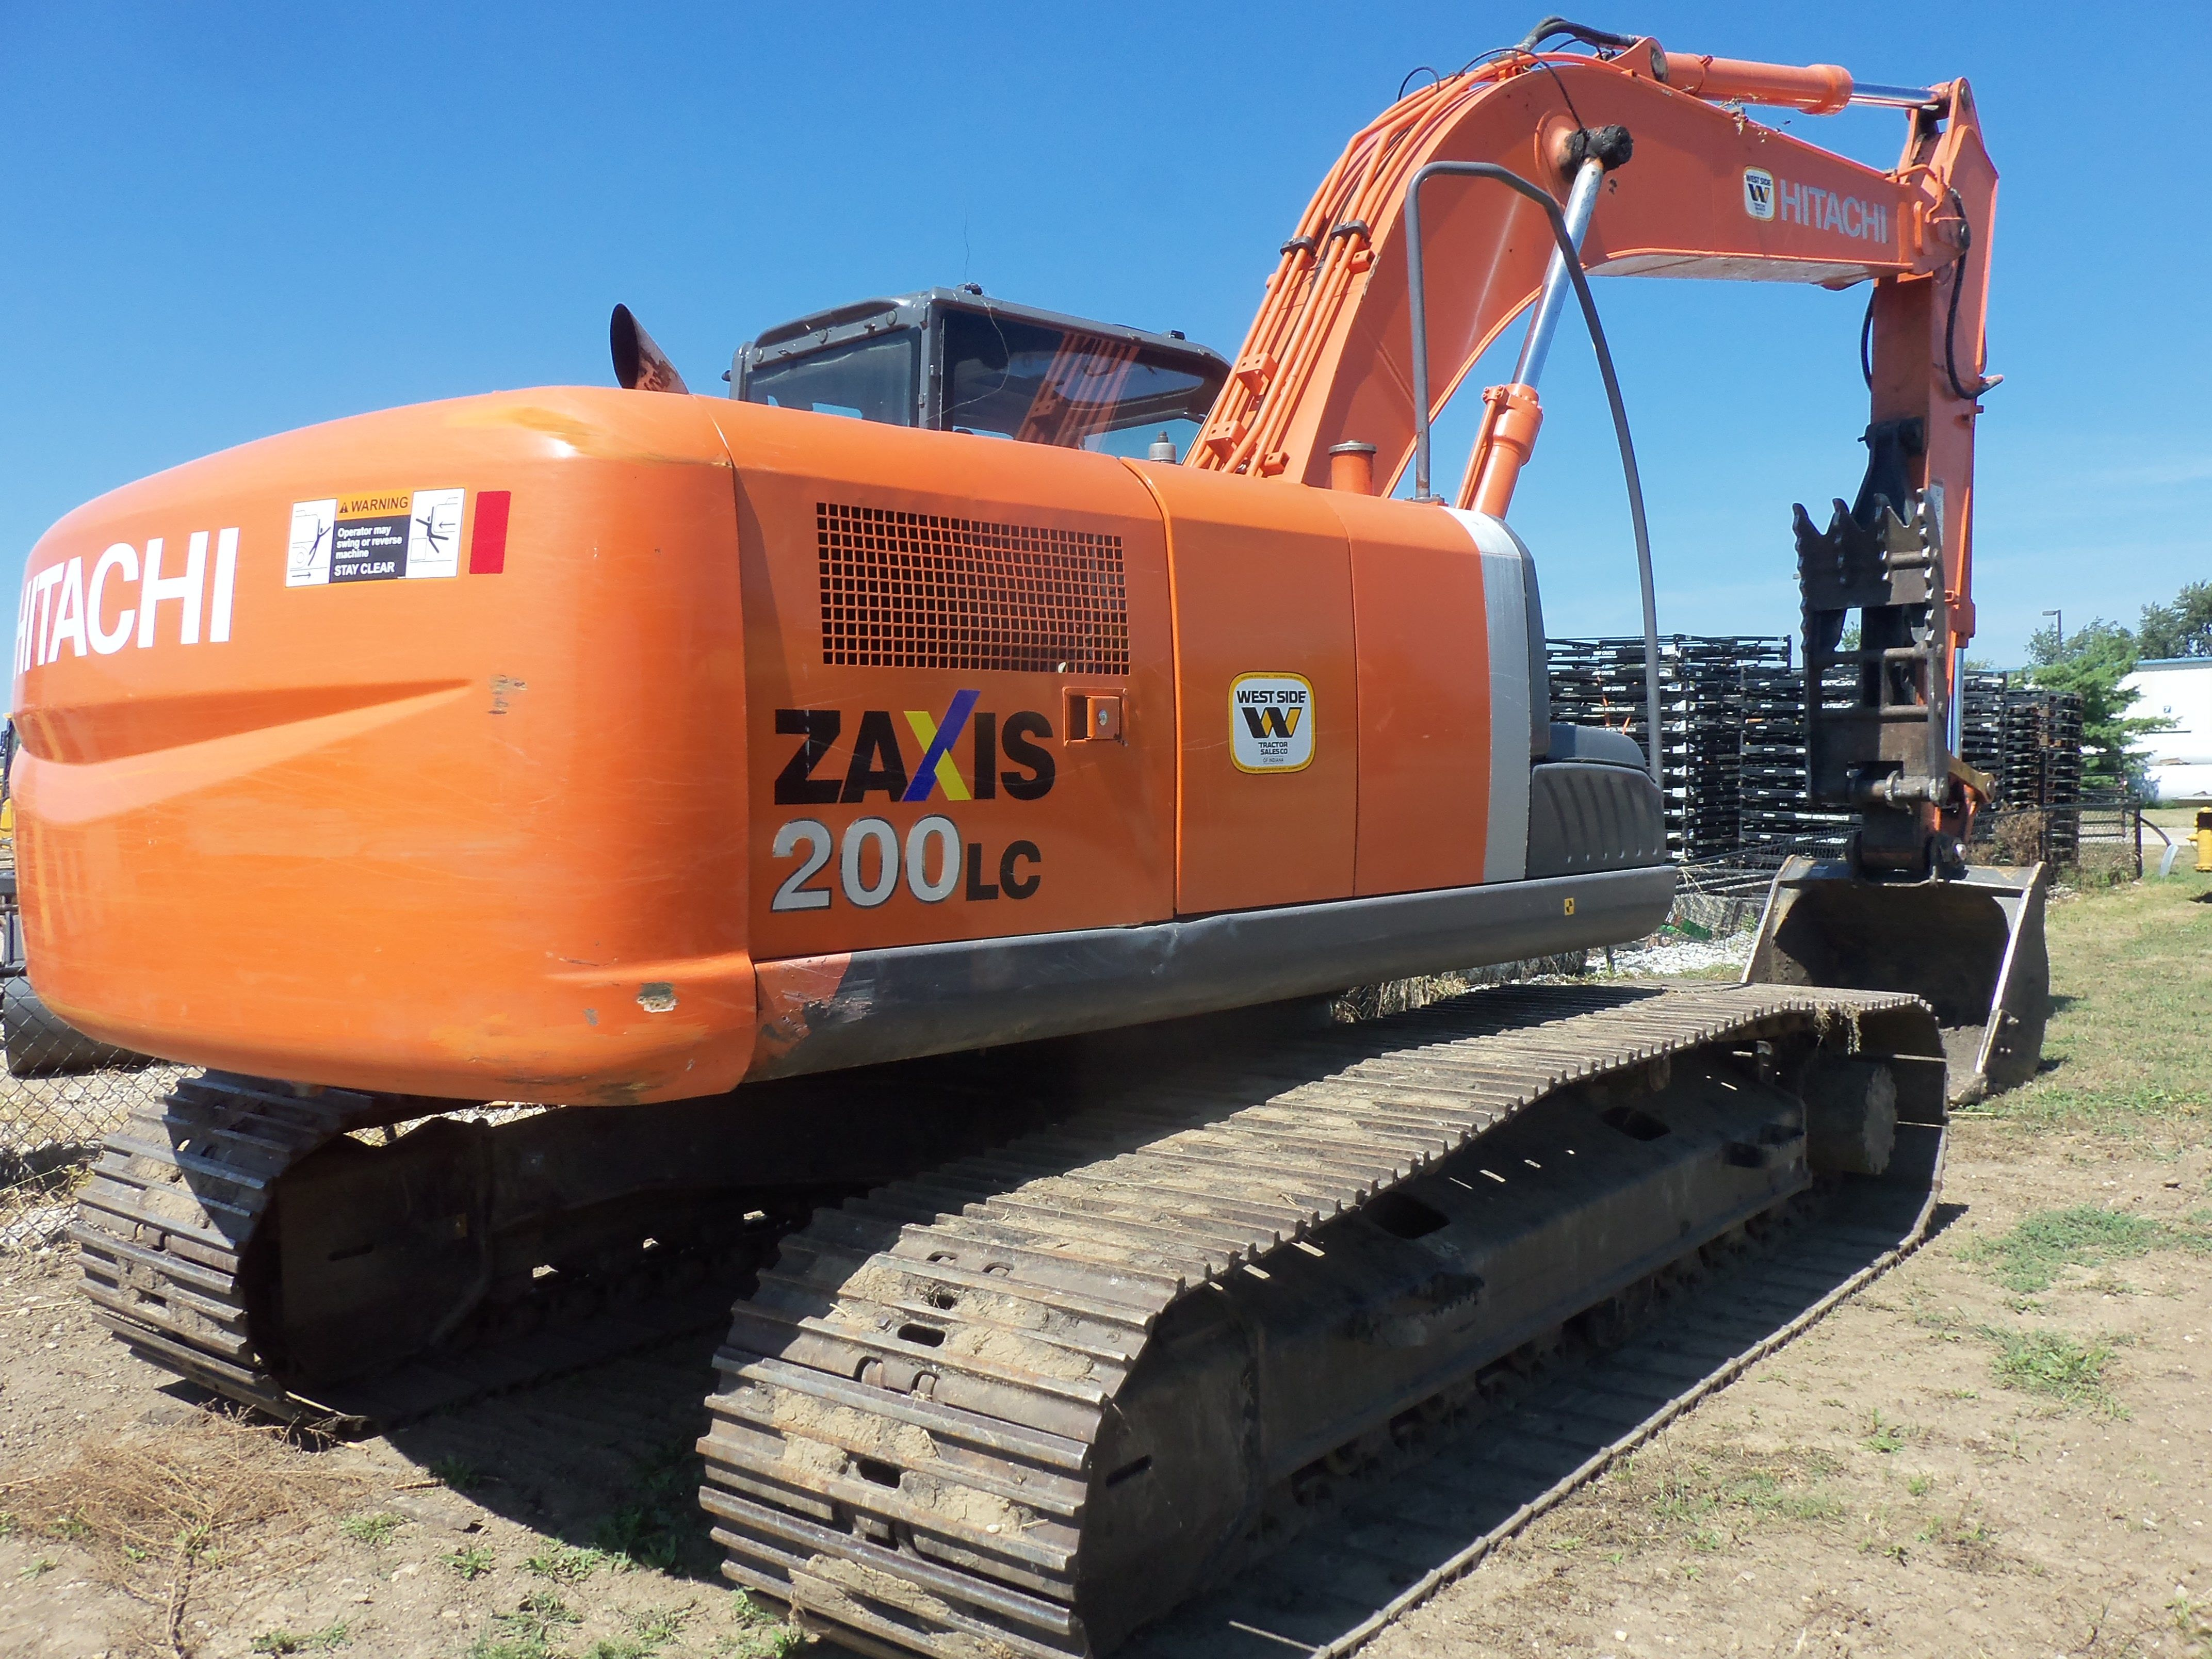 Hitachi Zaxis 200 LC hydraulic excavator Hydraulic Excavator, Heavy  Equipment, Construction, Transportation,